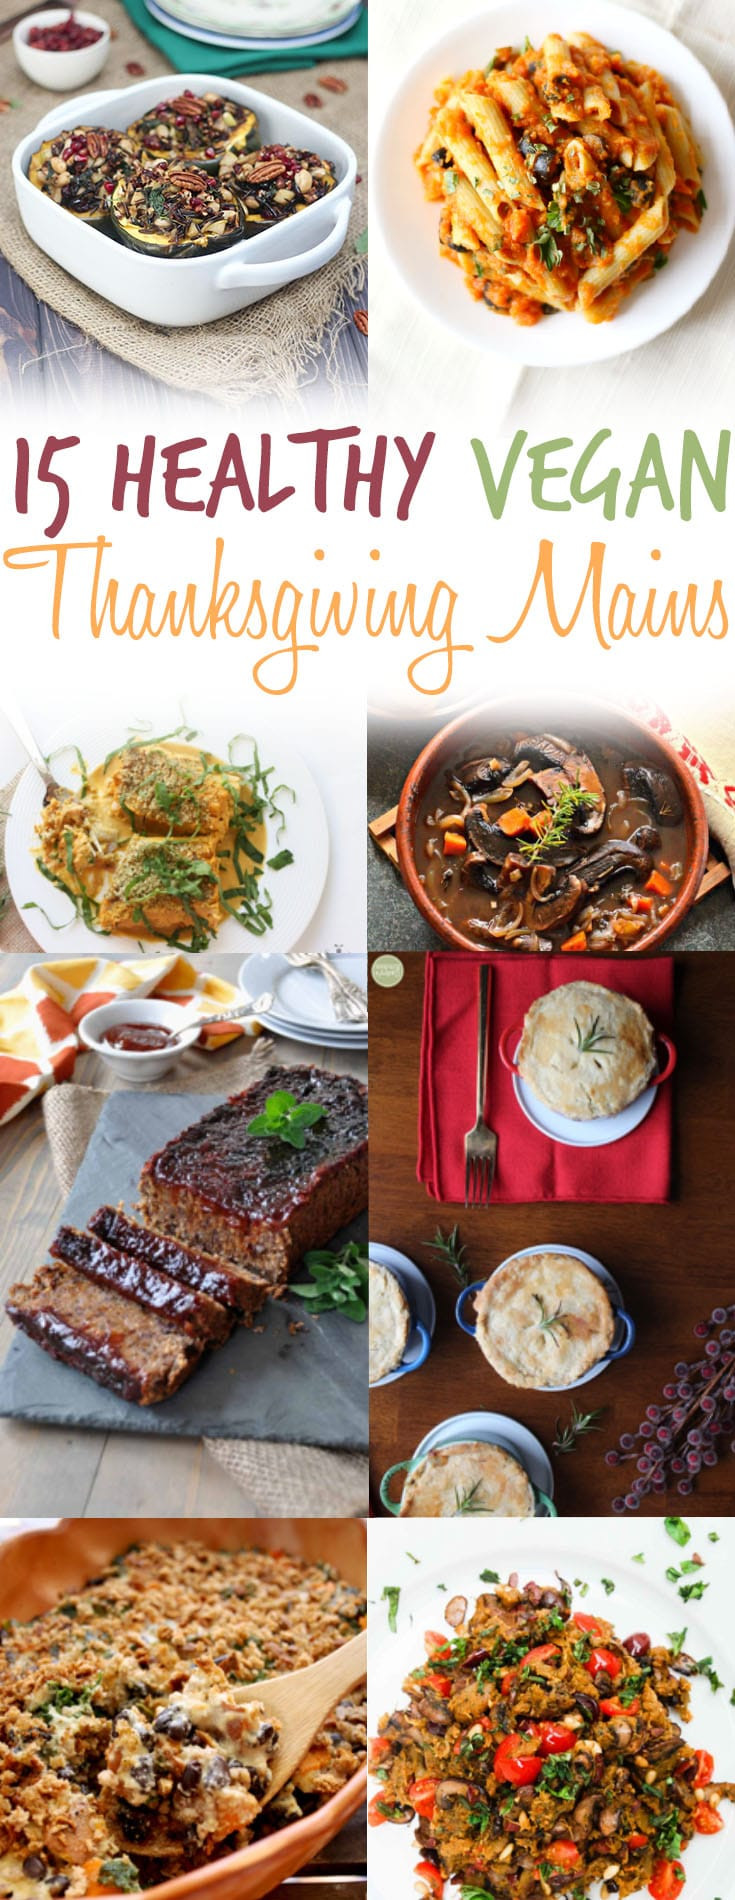 Vegetarian Thanksgiving Main Dish  15 Vegan Thanksgiving Main Dishes